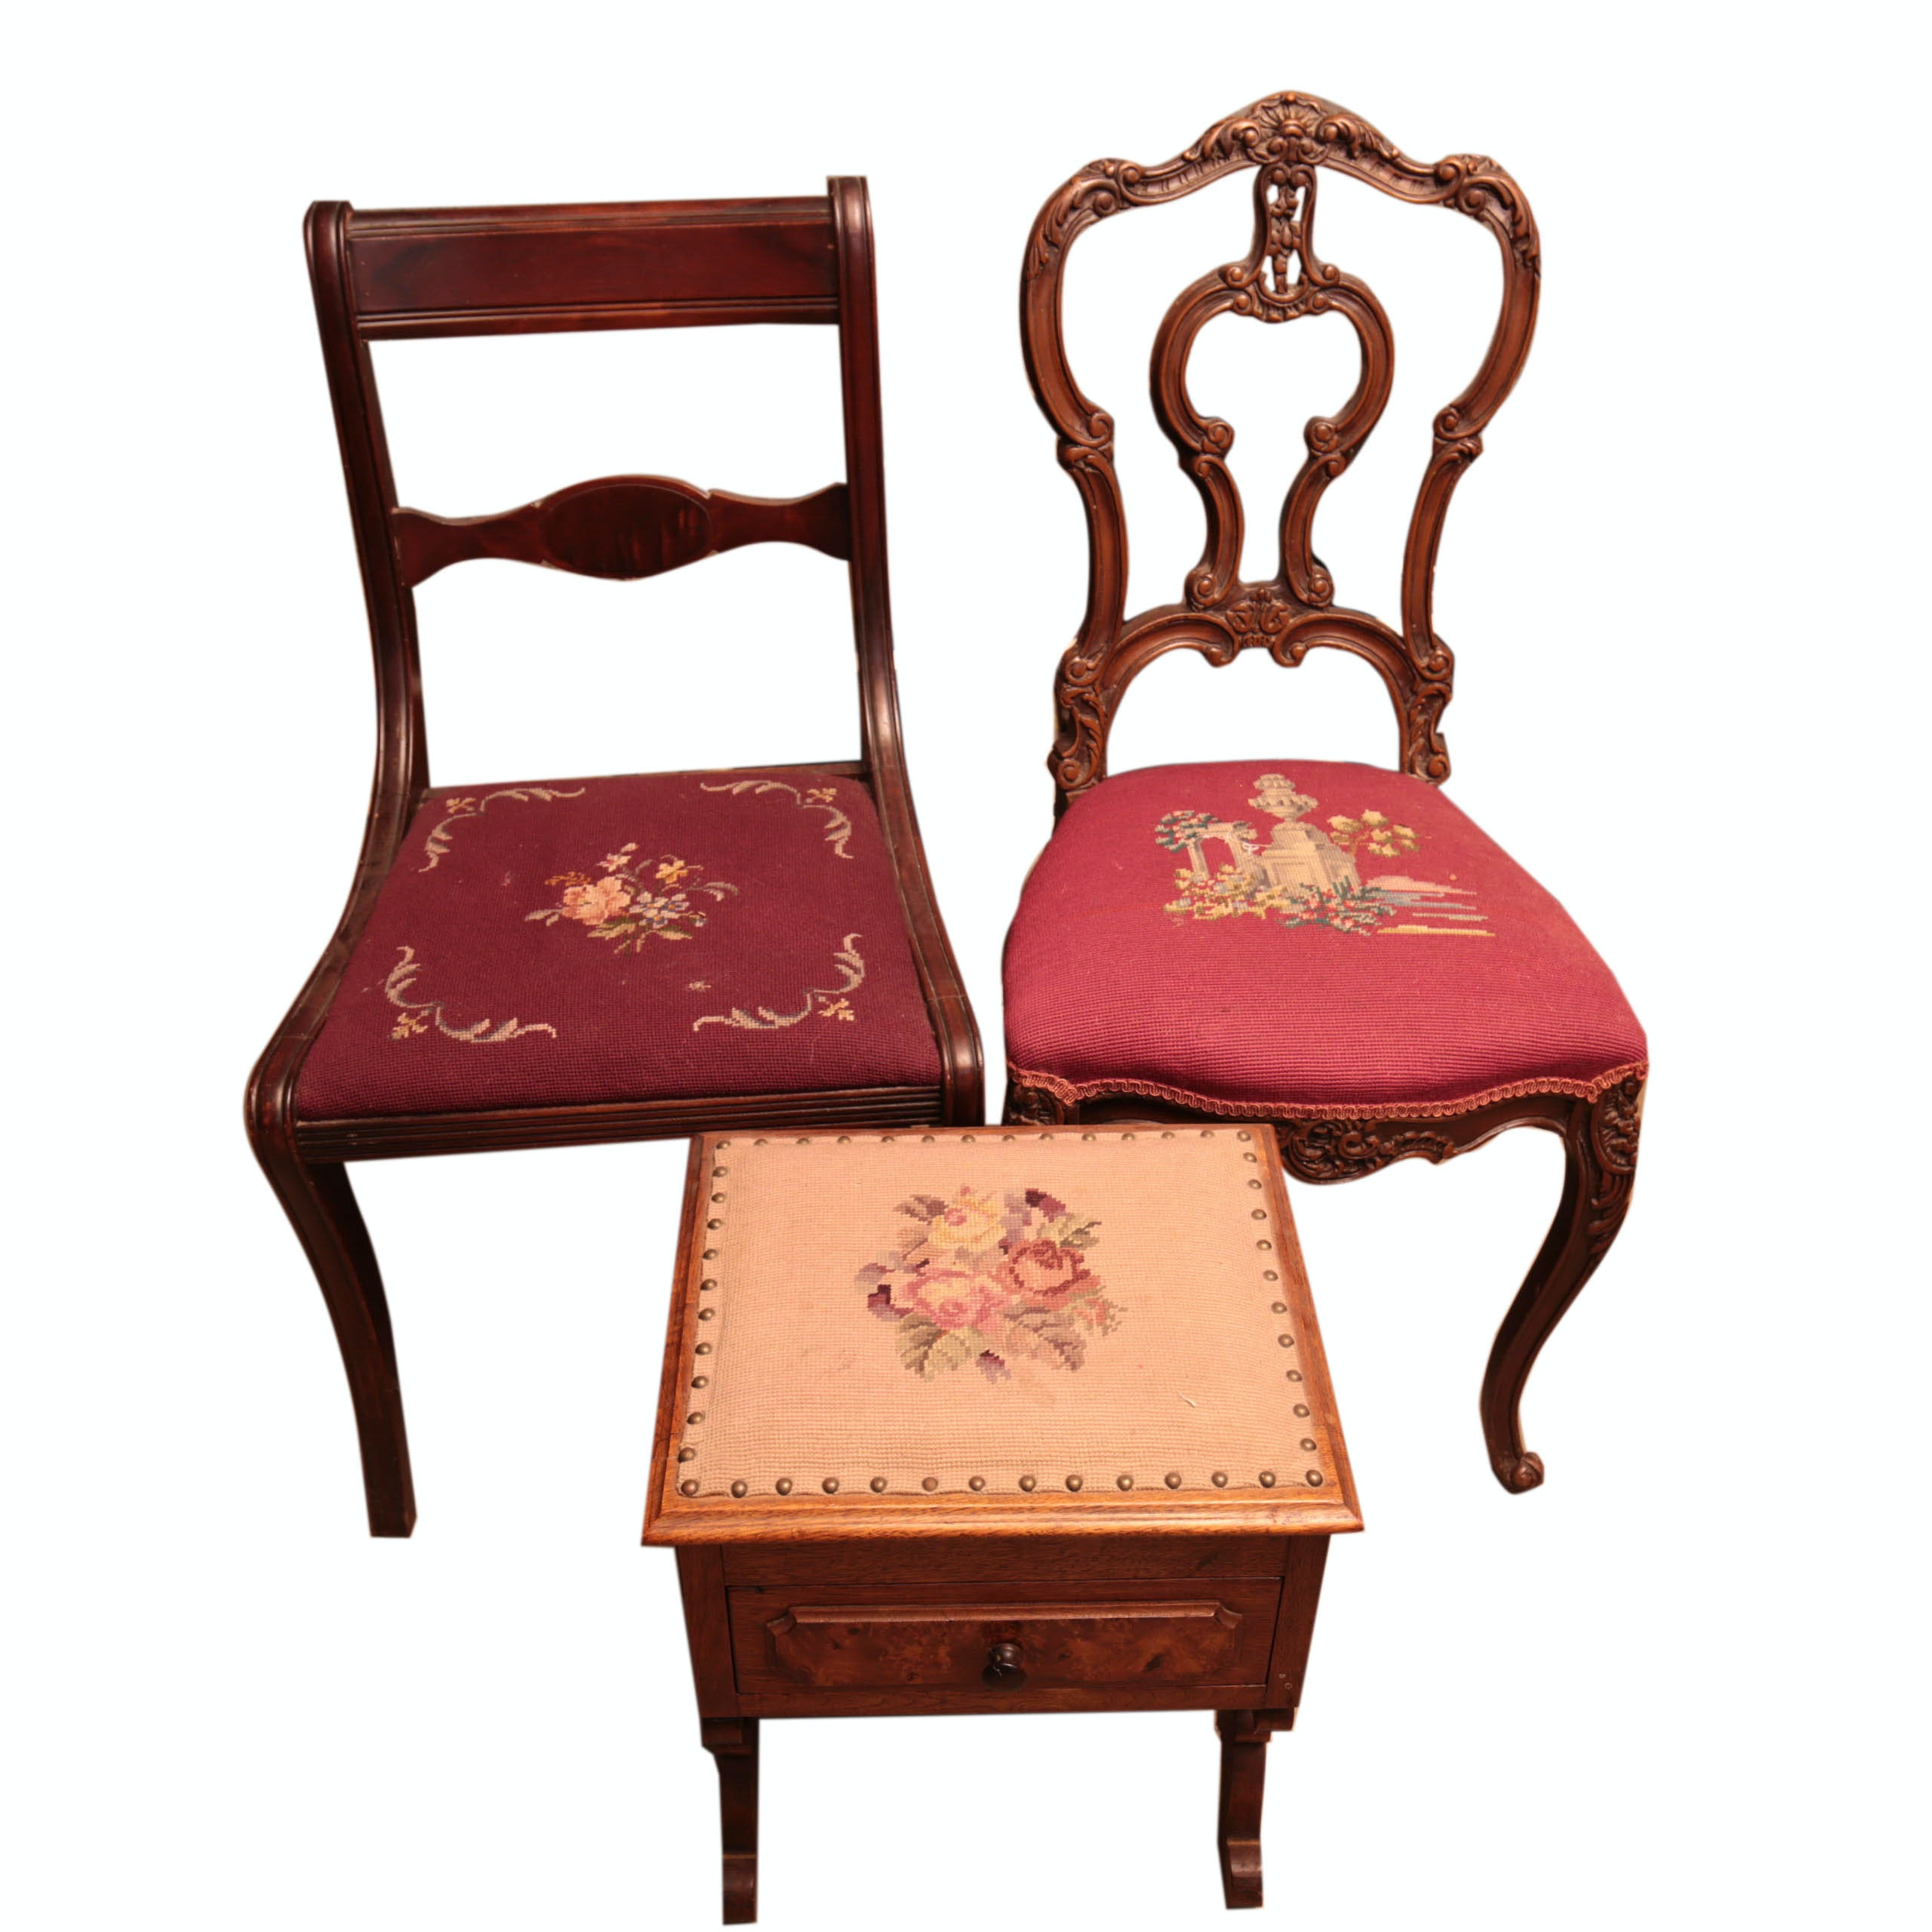 Pair of Needlepoint Chairs with Needlepoint End Table